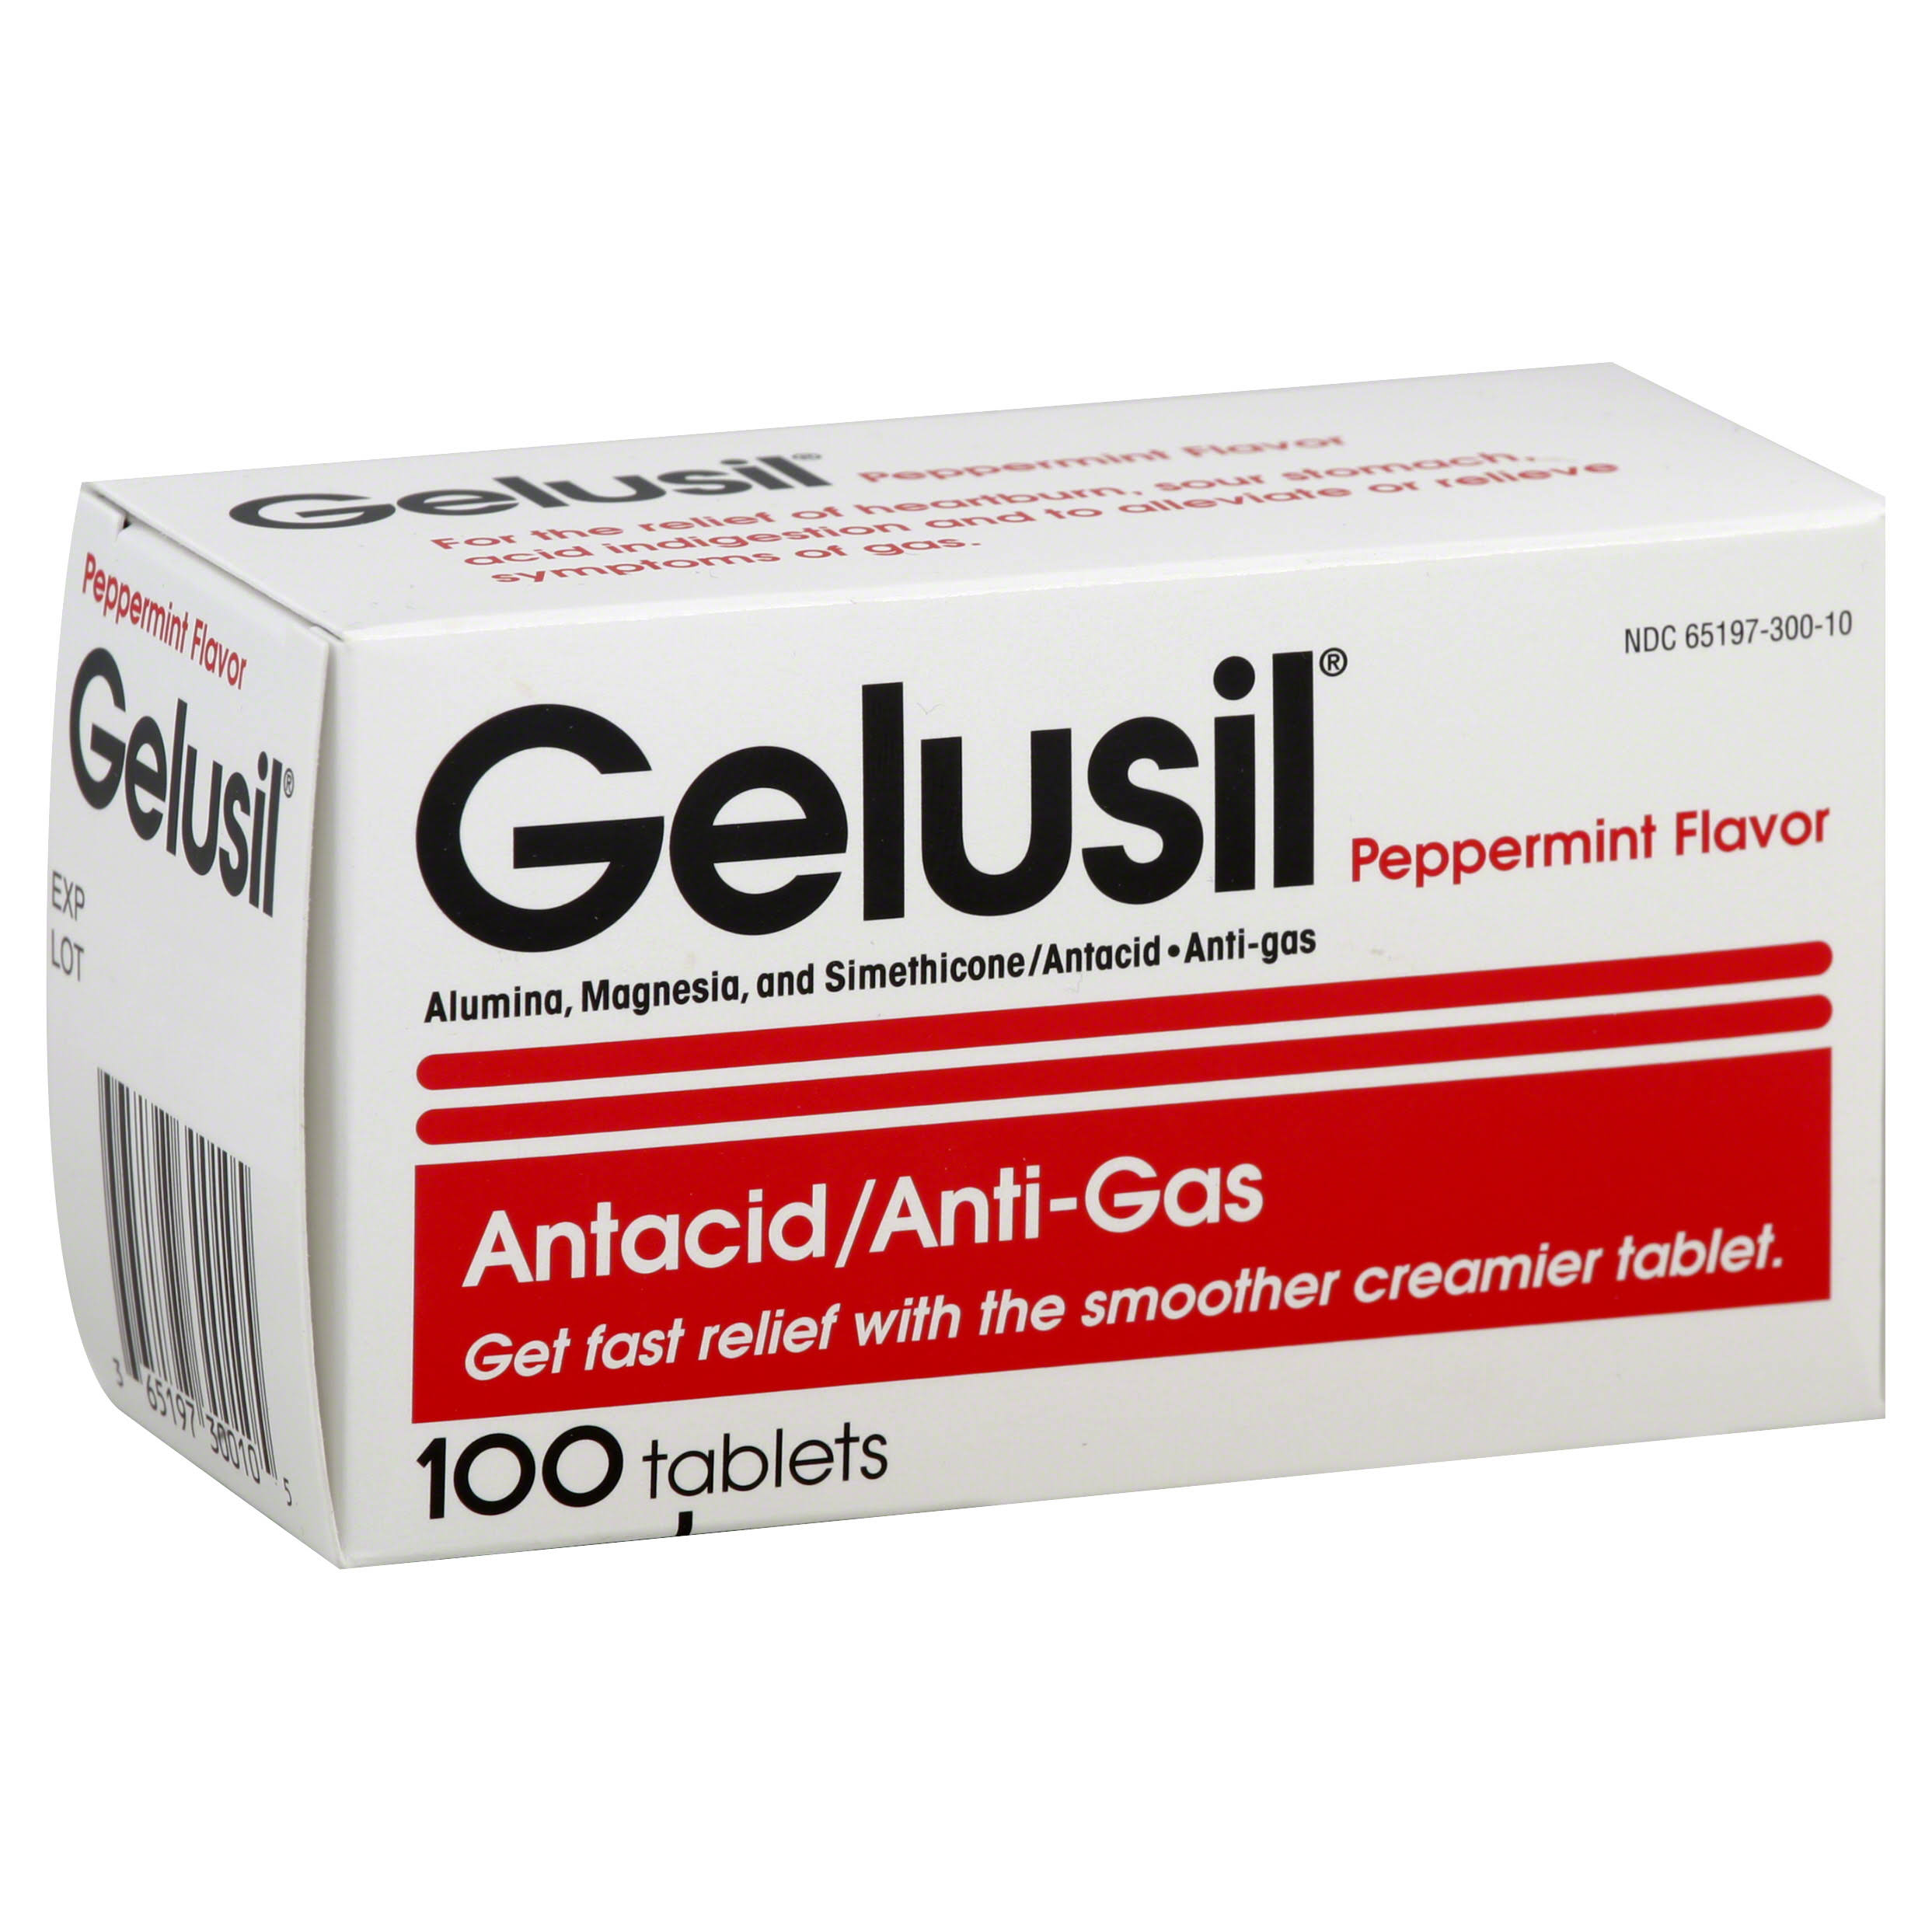 Gelusil Antacid & Anti Gas Chewable Tablets - Cool Mint